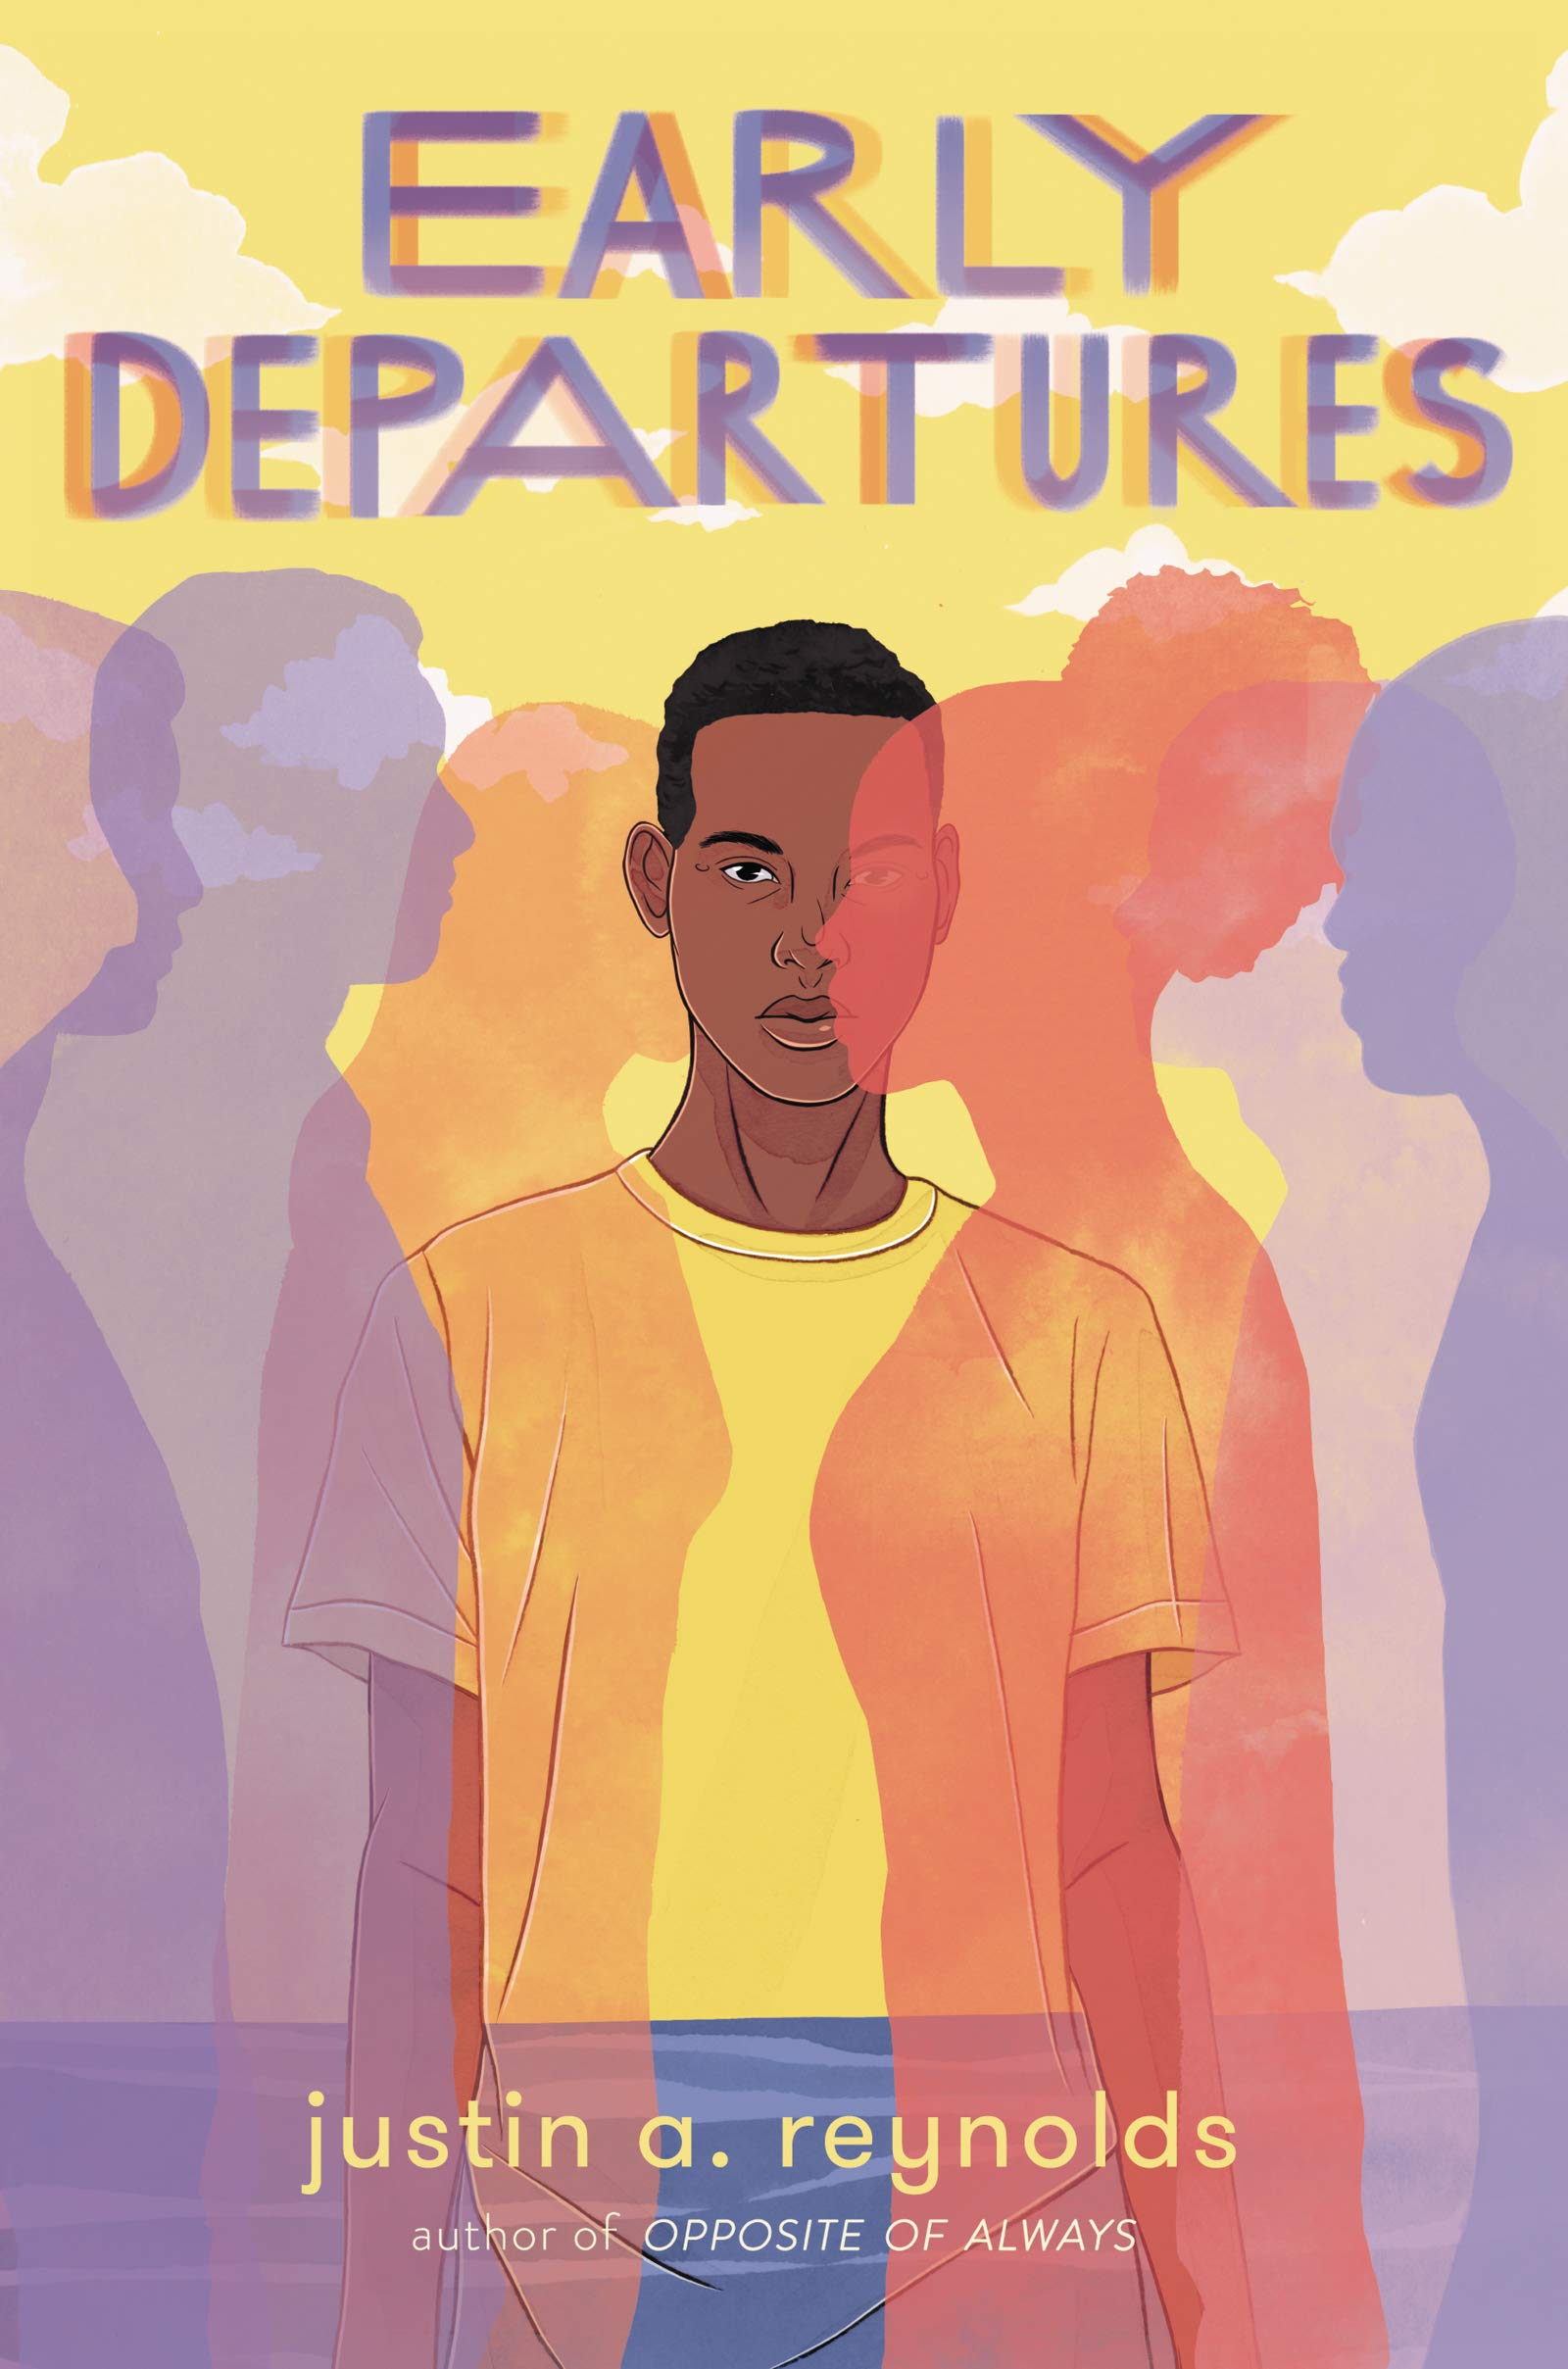 Amazon.com: Early Departures (9780062748409): Reynolds, Justin A.: Books